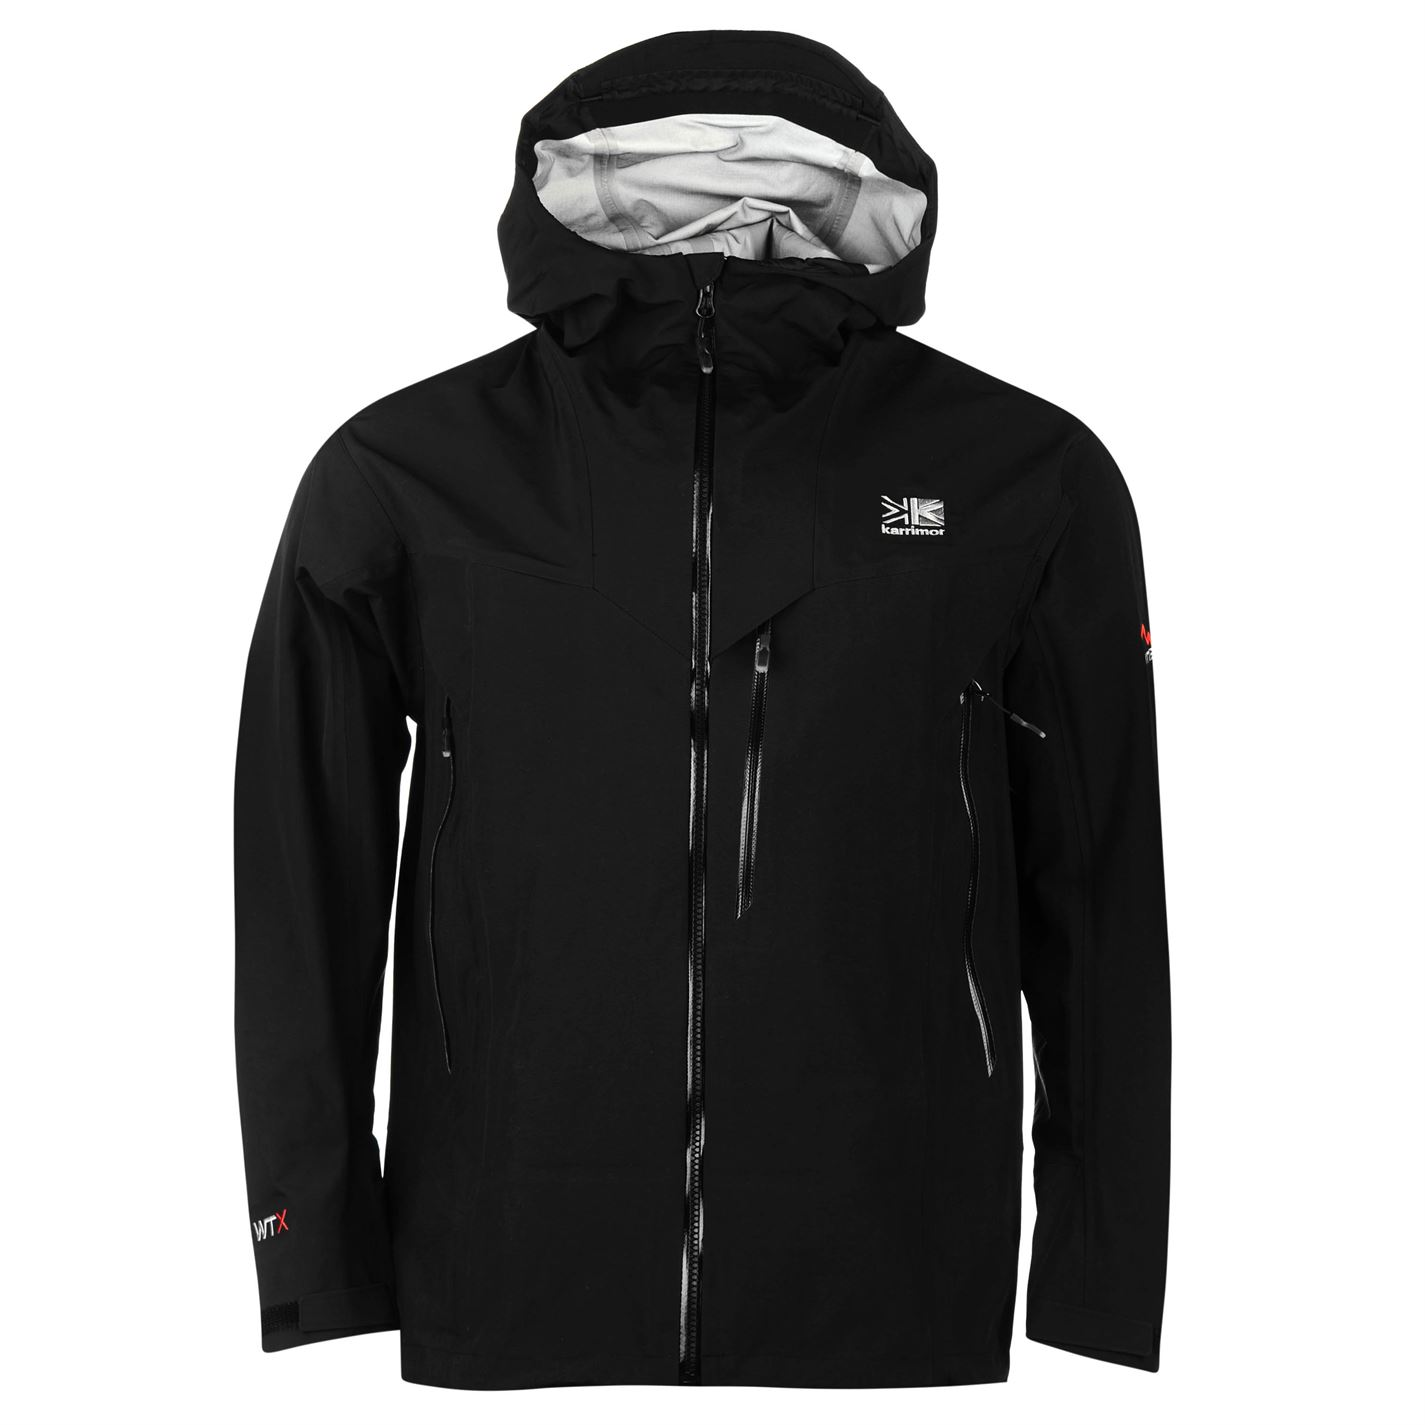 Лыжная куртка Karrimor Hot Rock Jacket M Черная (442007-R) 9b2329524ffee